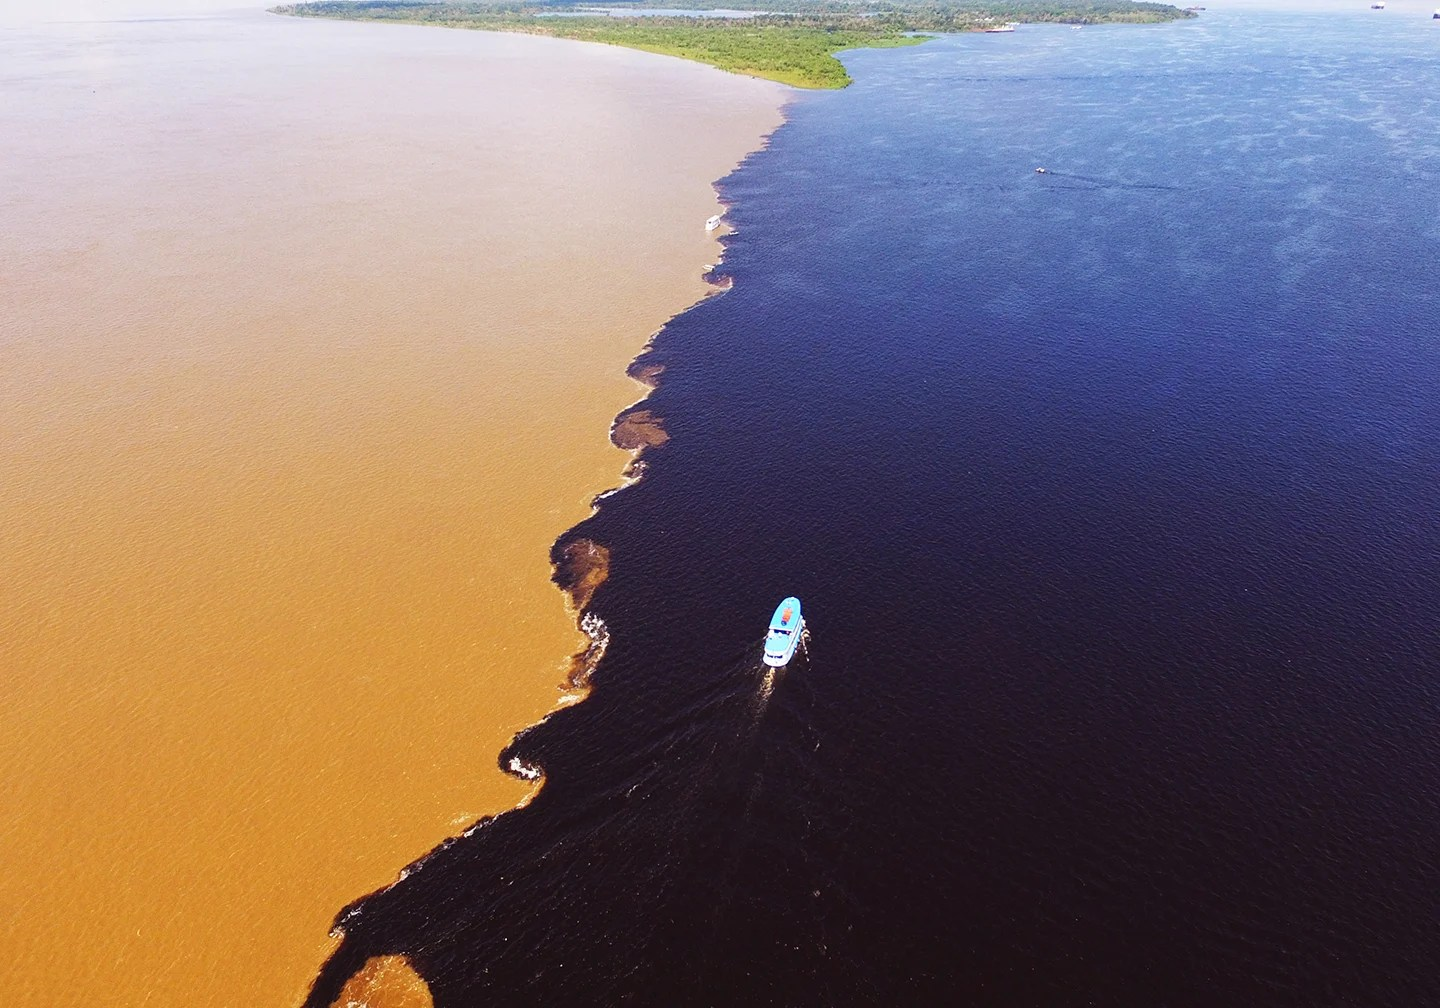 A boat on the Amazon River at the meeting of the Rio Negro and the Amazon